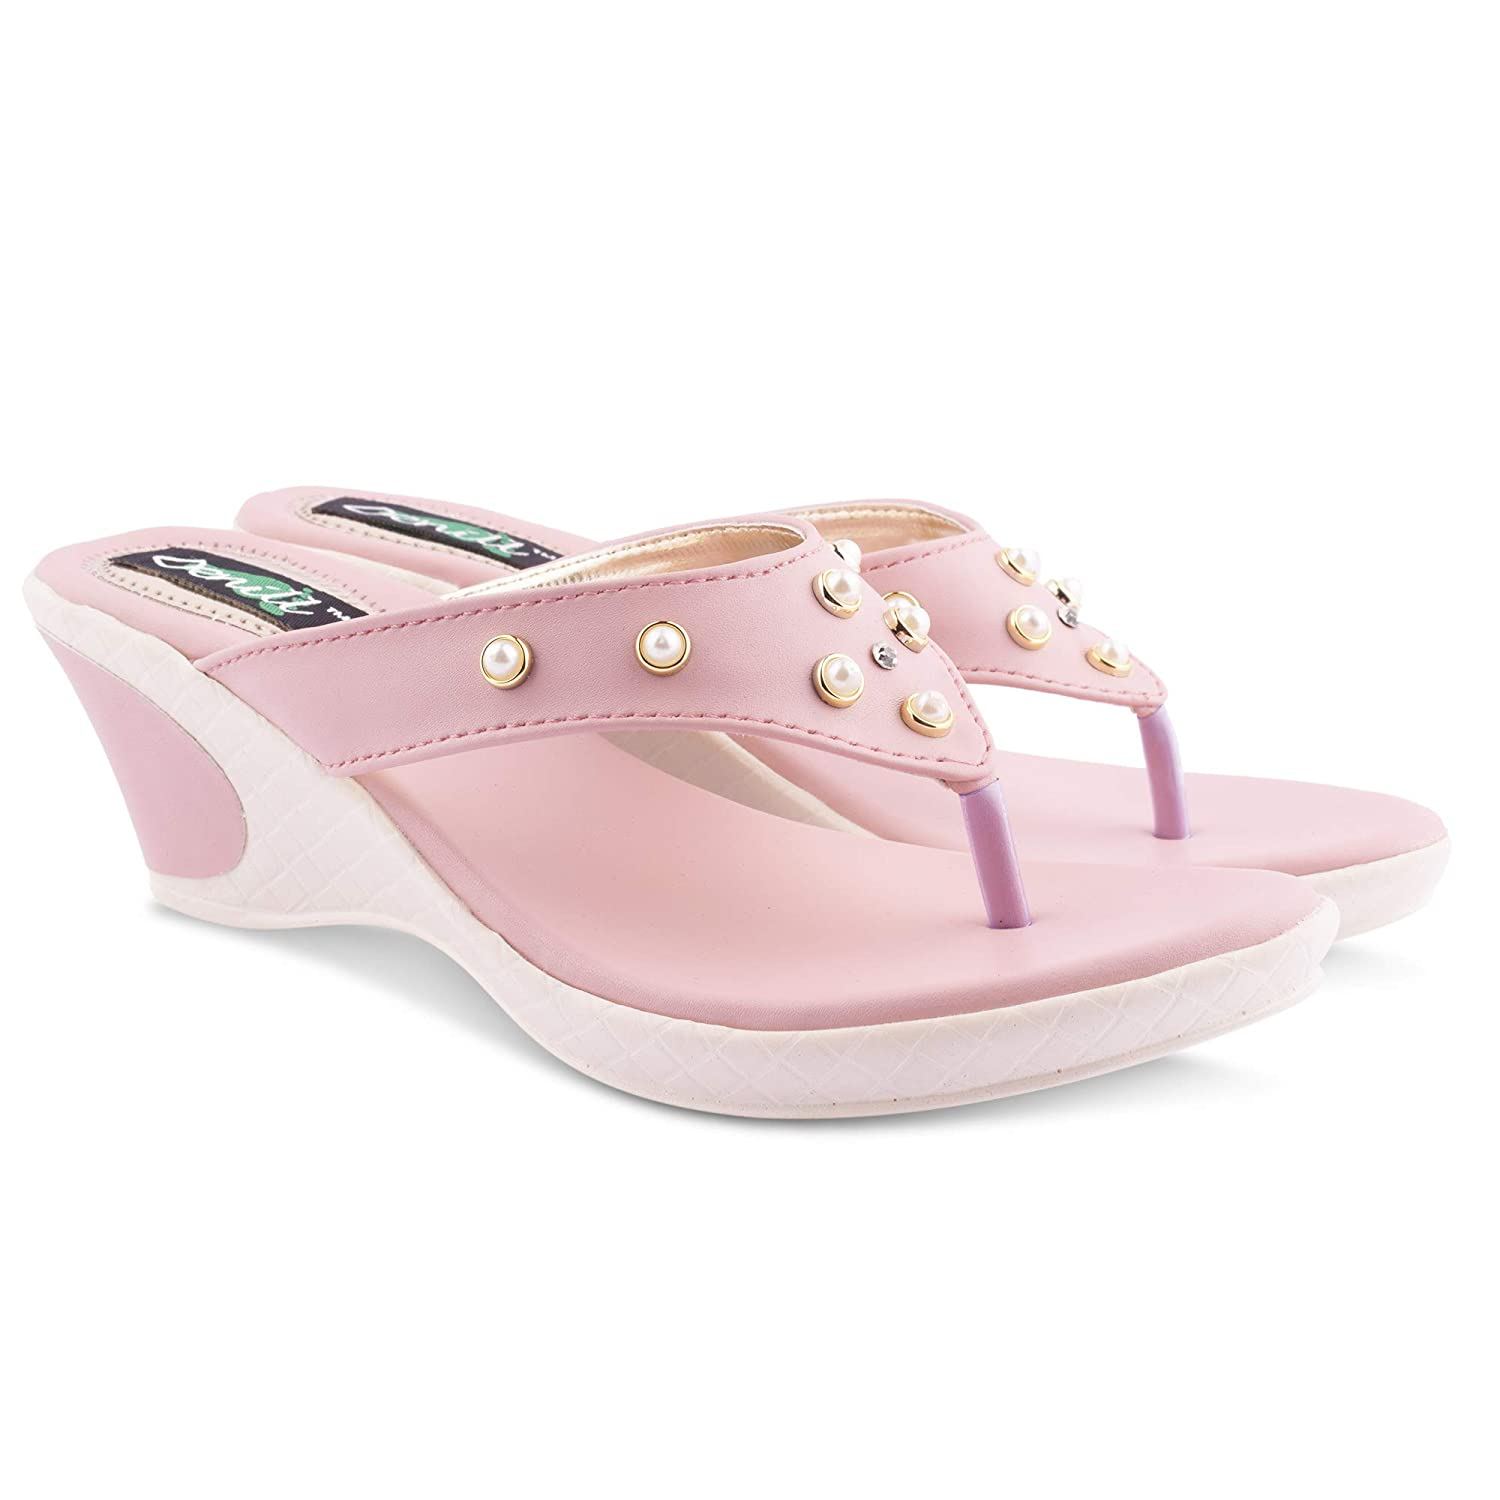 Denill Latest Collection, Comfortable Women's Wedges | Wedges for Womens | Wedges Sandals for Women | Wedges for Women Casual...